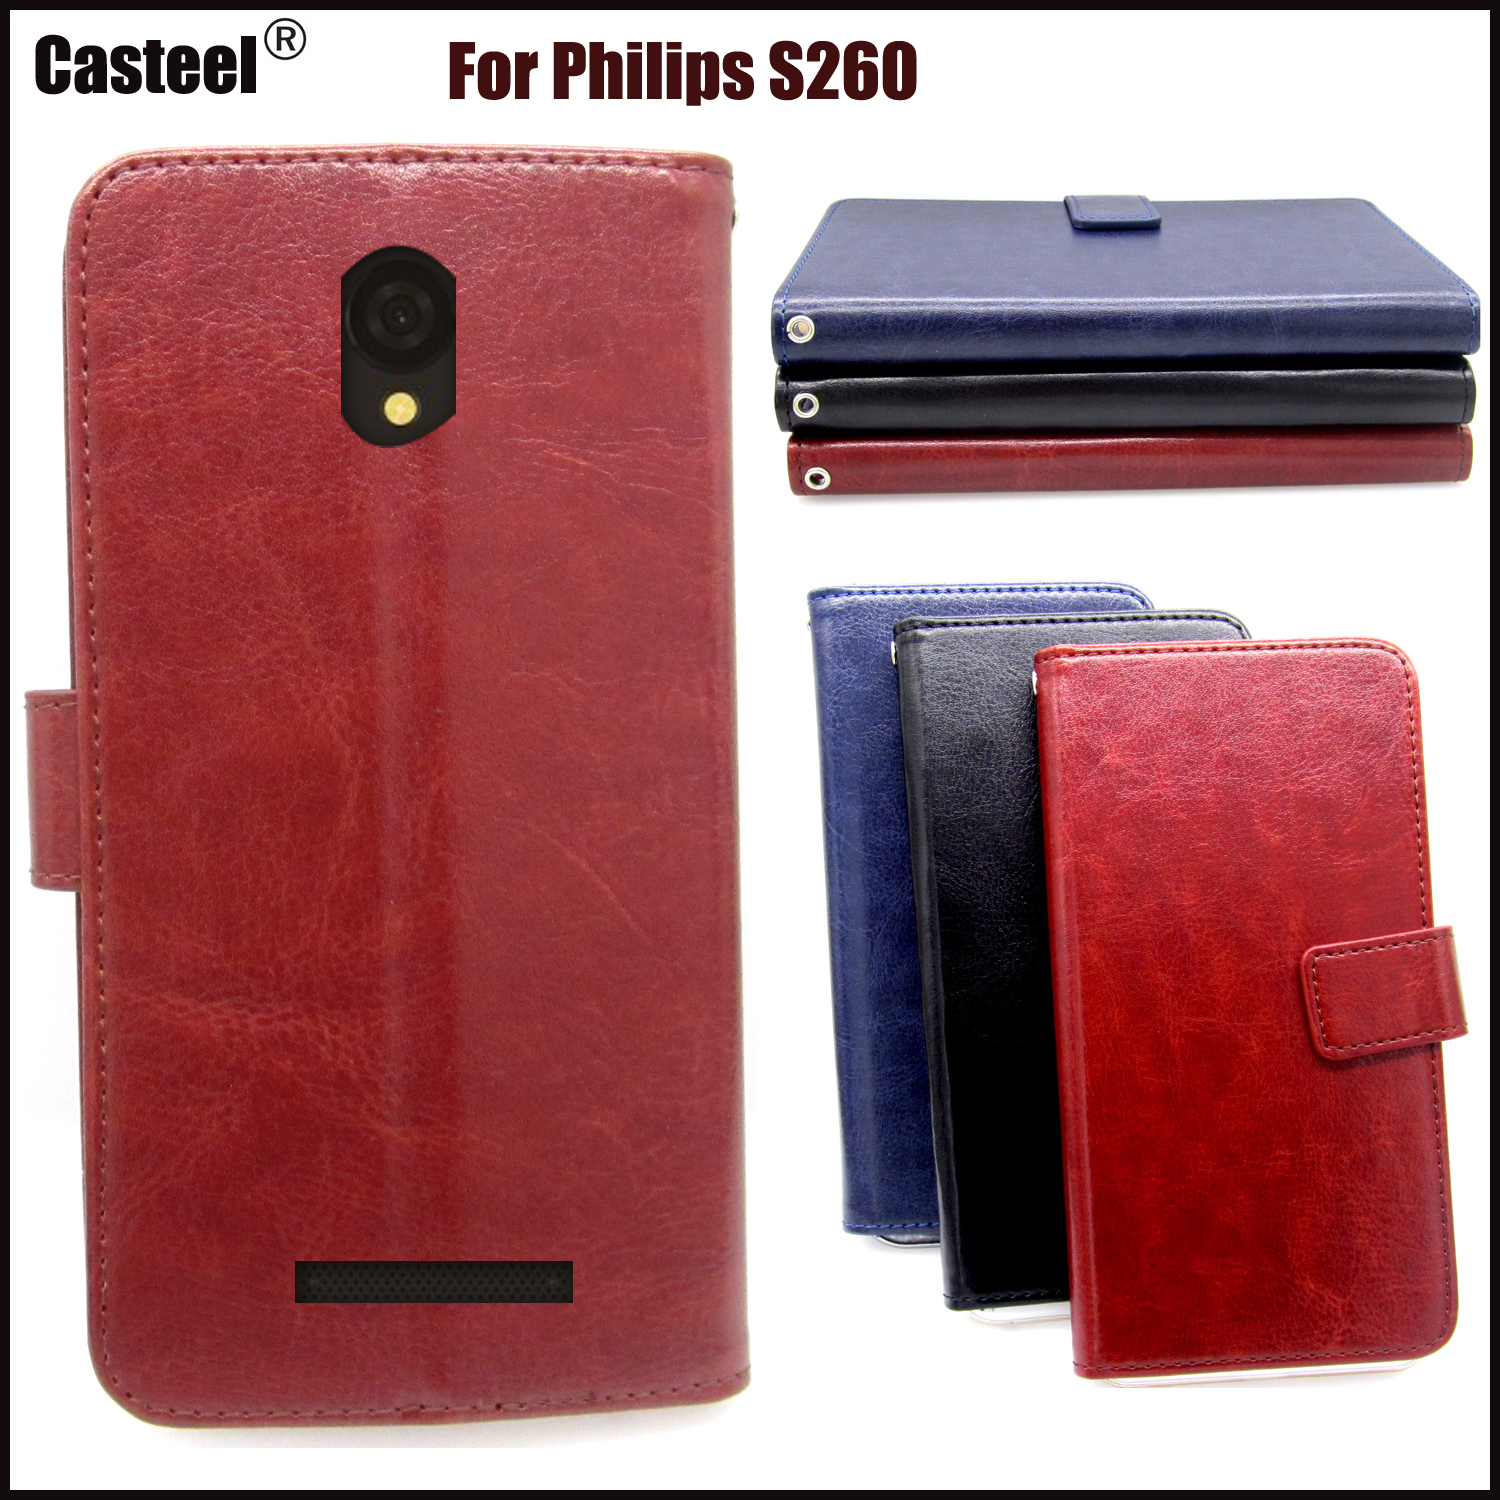 Casteel Classic Flight Series high quality PU skin leather case For Philips S260 Case Cover Shield